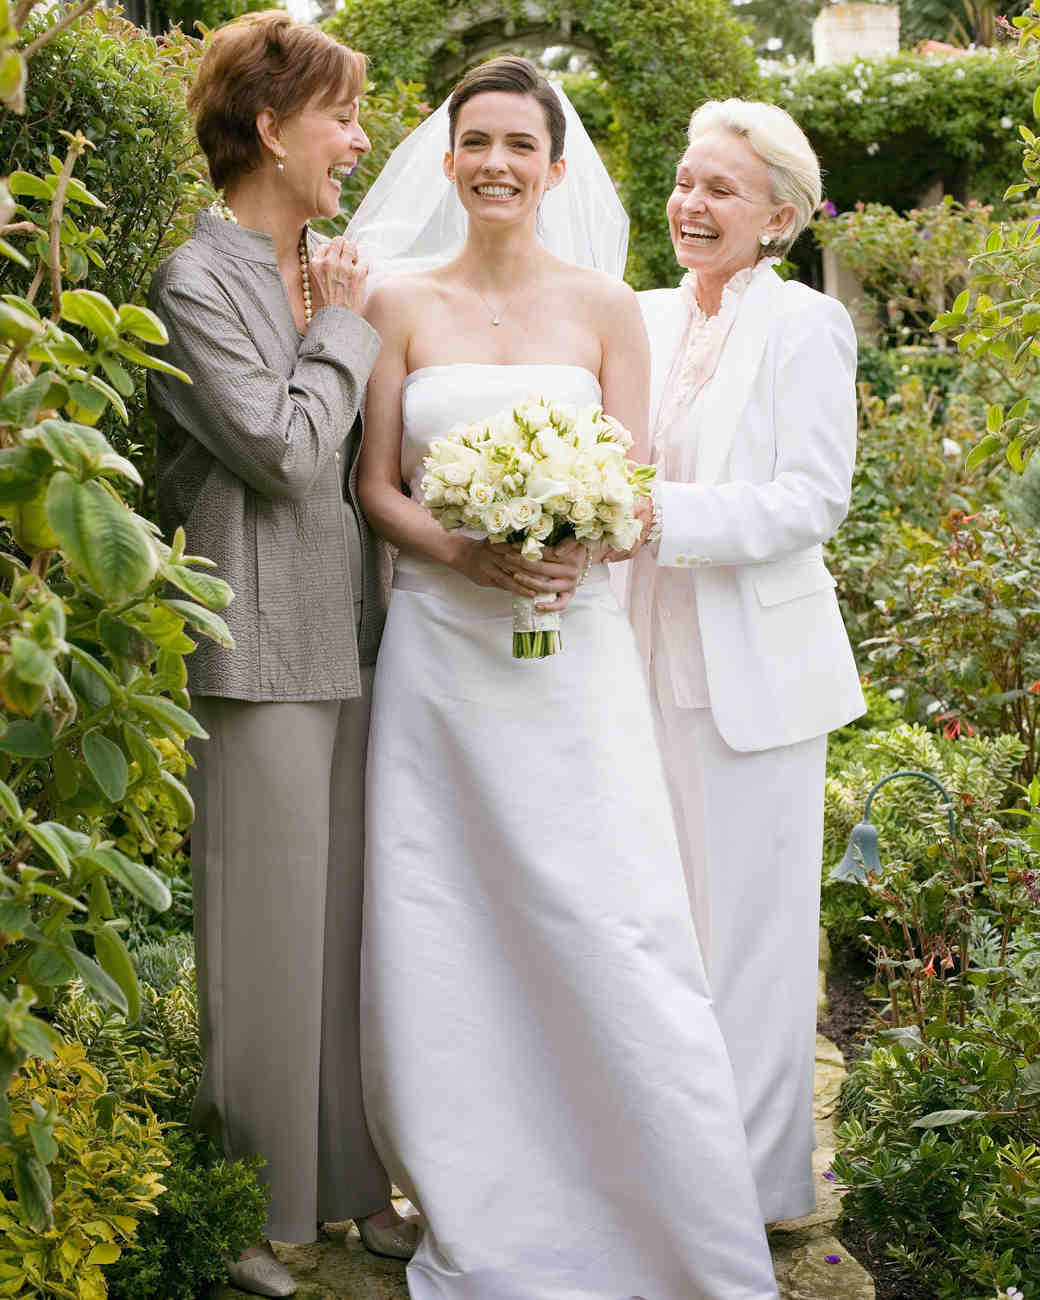 How to Handle Difficult Family Dynamics at Your Wedding